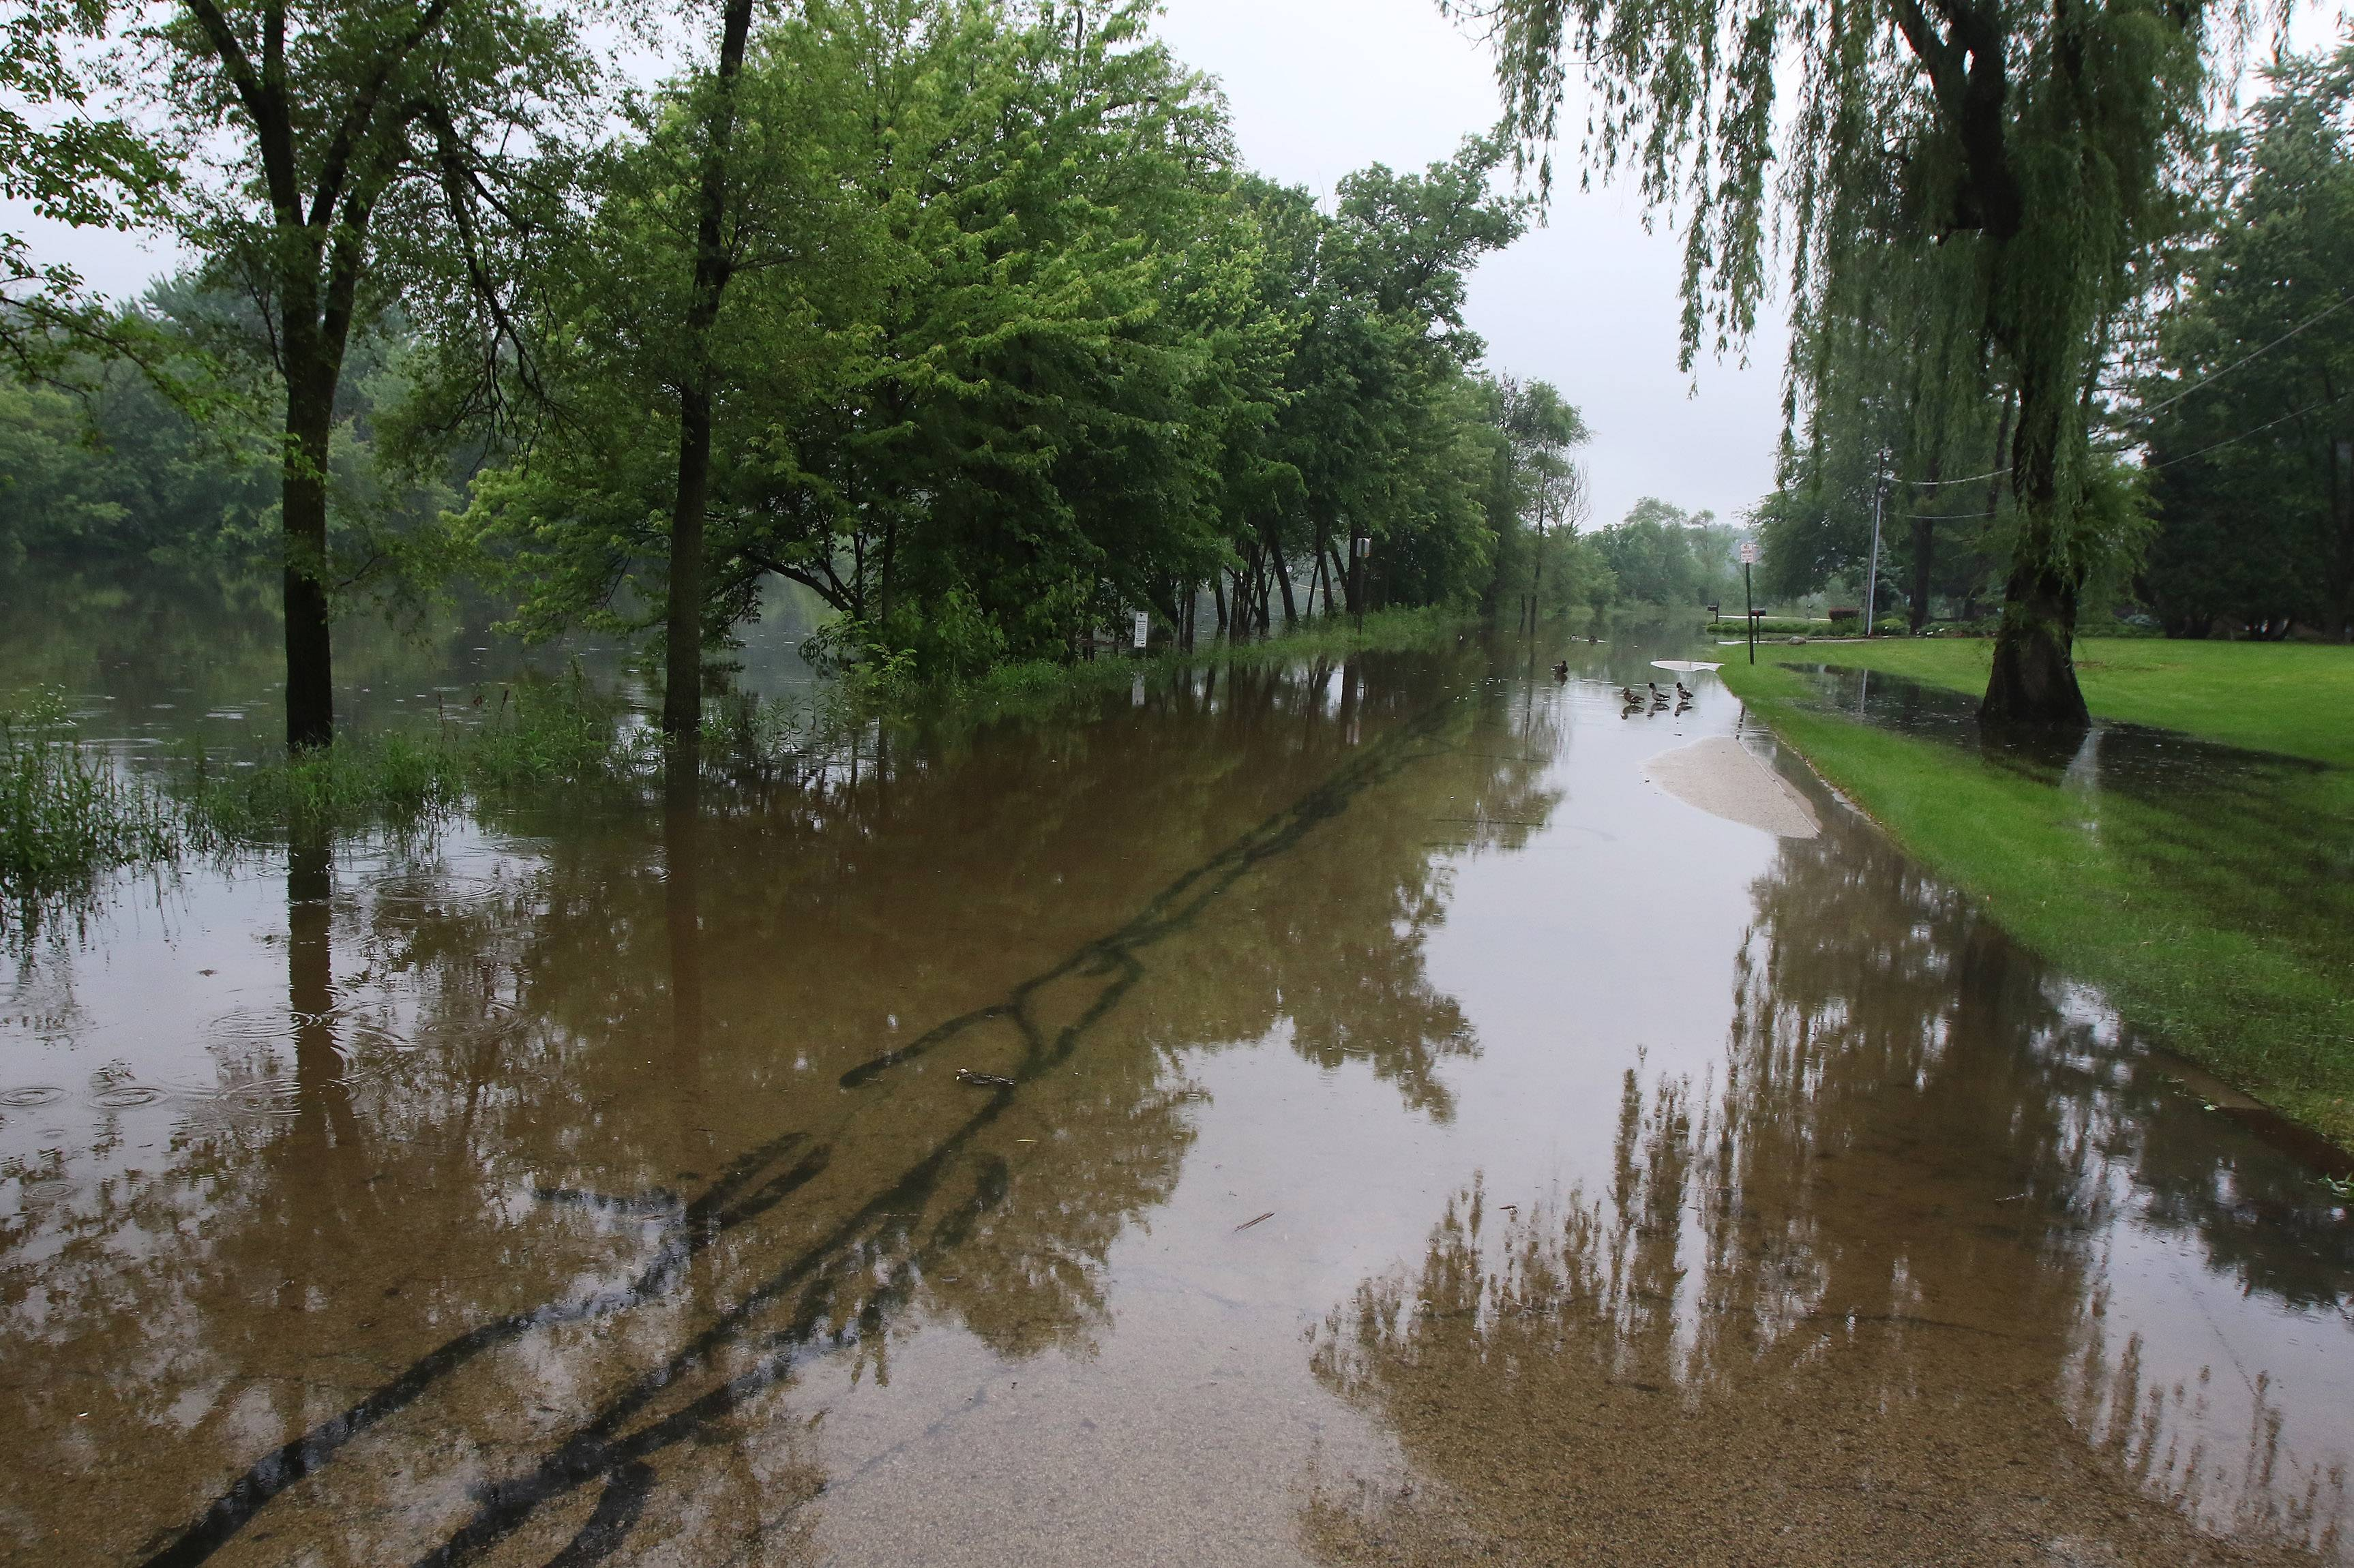 Hillside Avenue was flooded near Willow Road in Prospect Heights on Sunday. Heavy thunderstorms over the weekend closed roads and poured water into basements across the city.